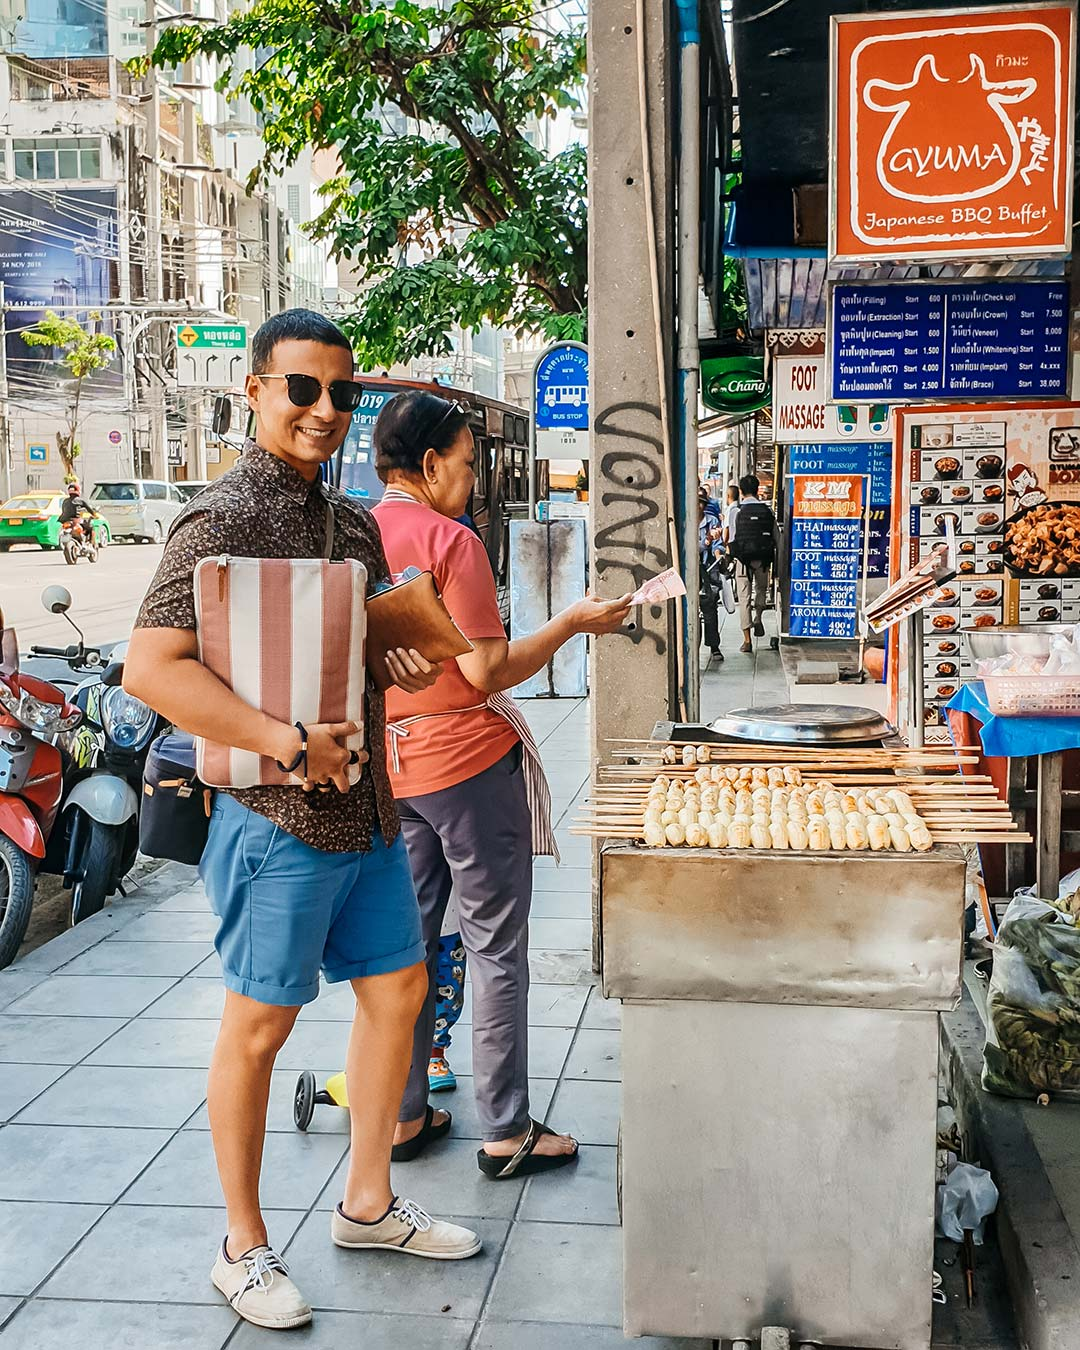 Bangkok Travel Guide for first timers